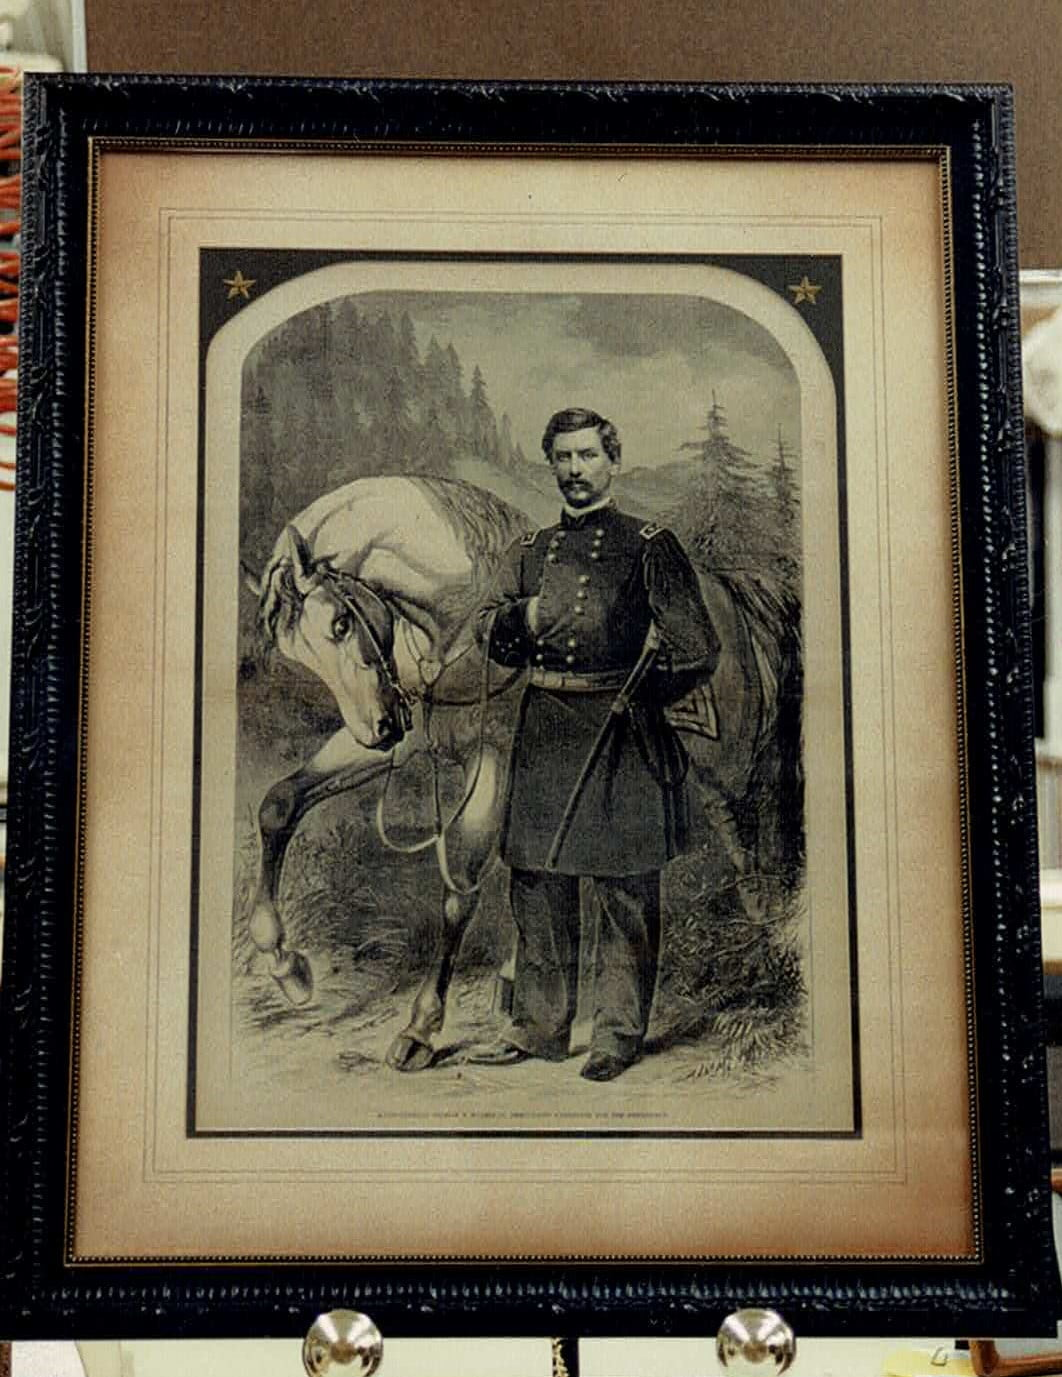 a antique photo of a soldier standing beside a horse within a archive photo frame